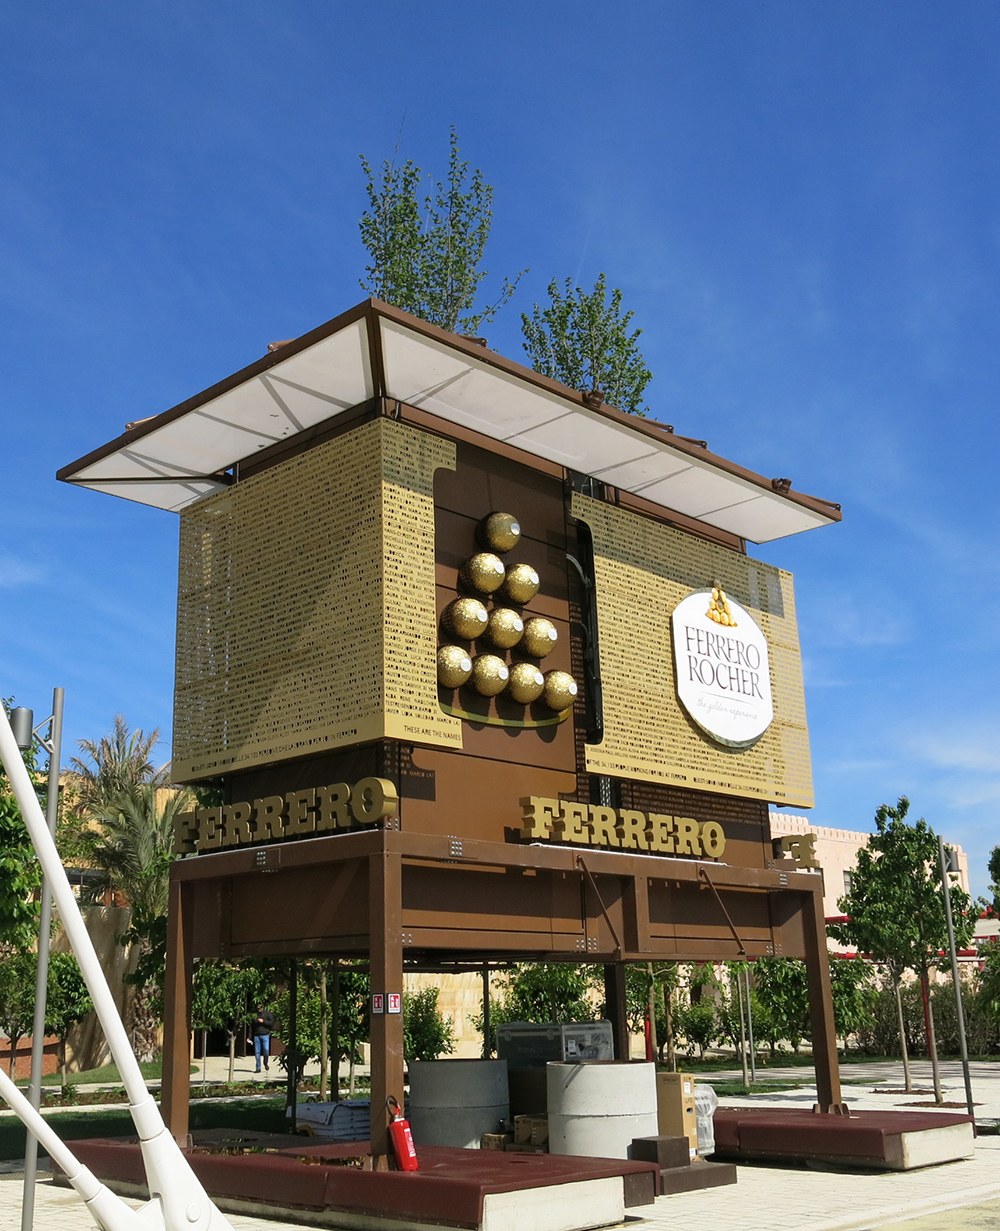 Ferrero Rocher at Milan Expo